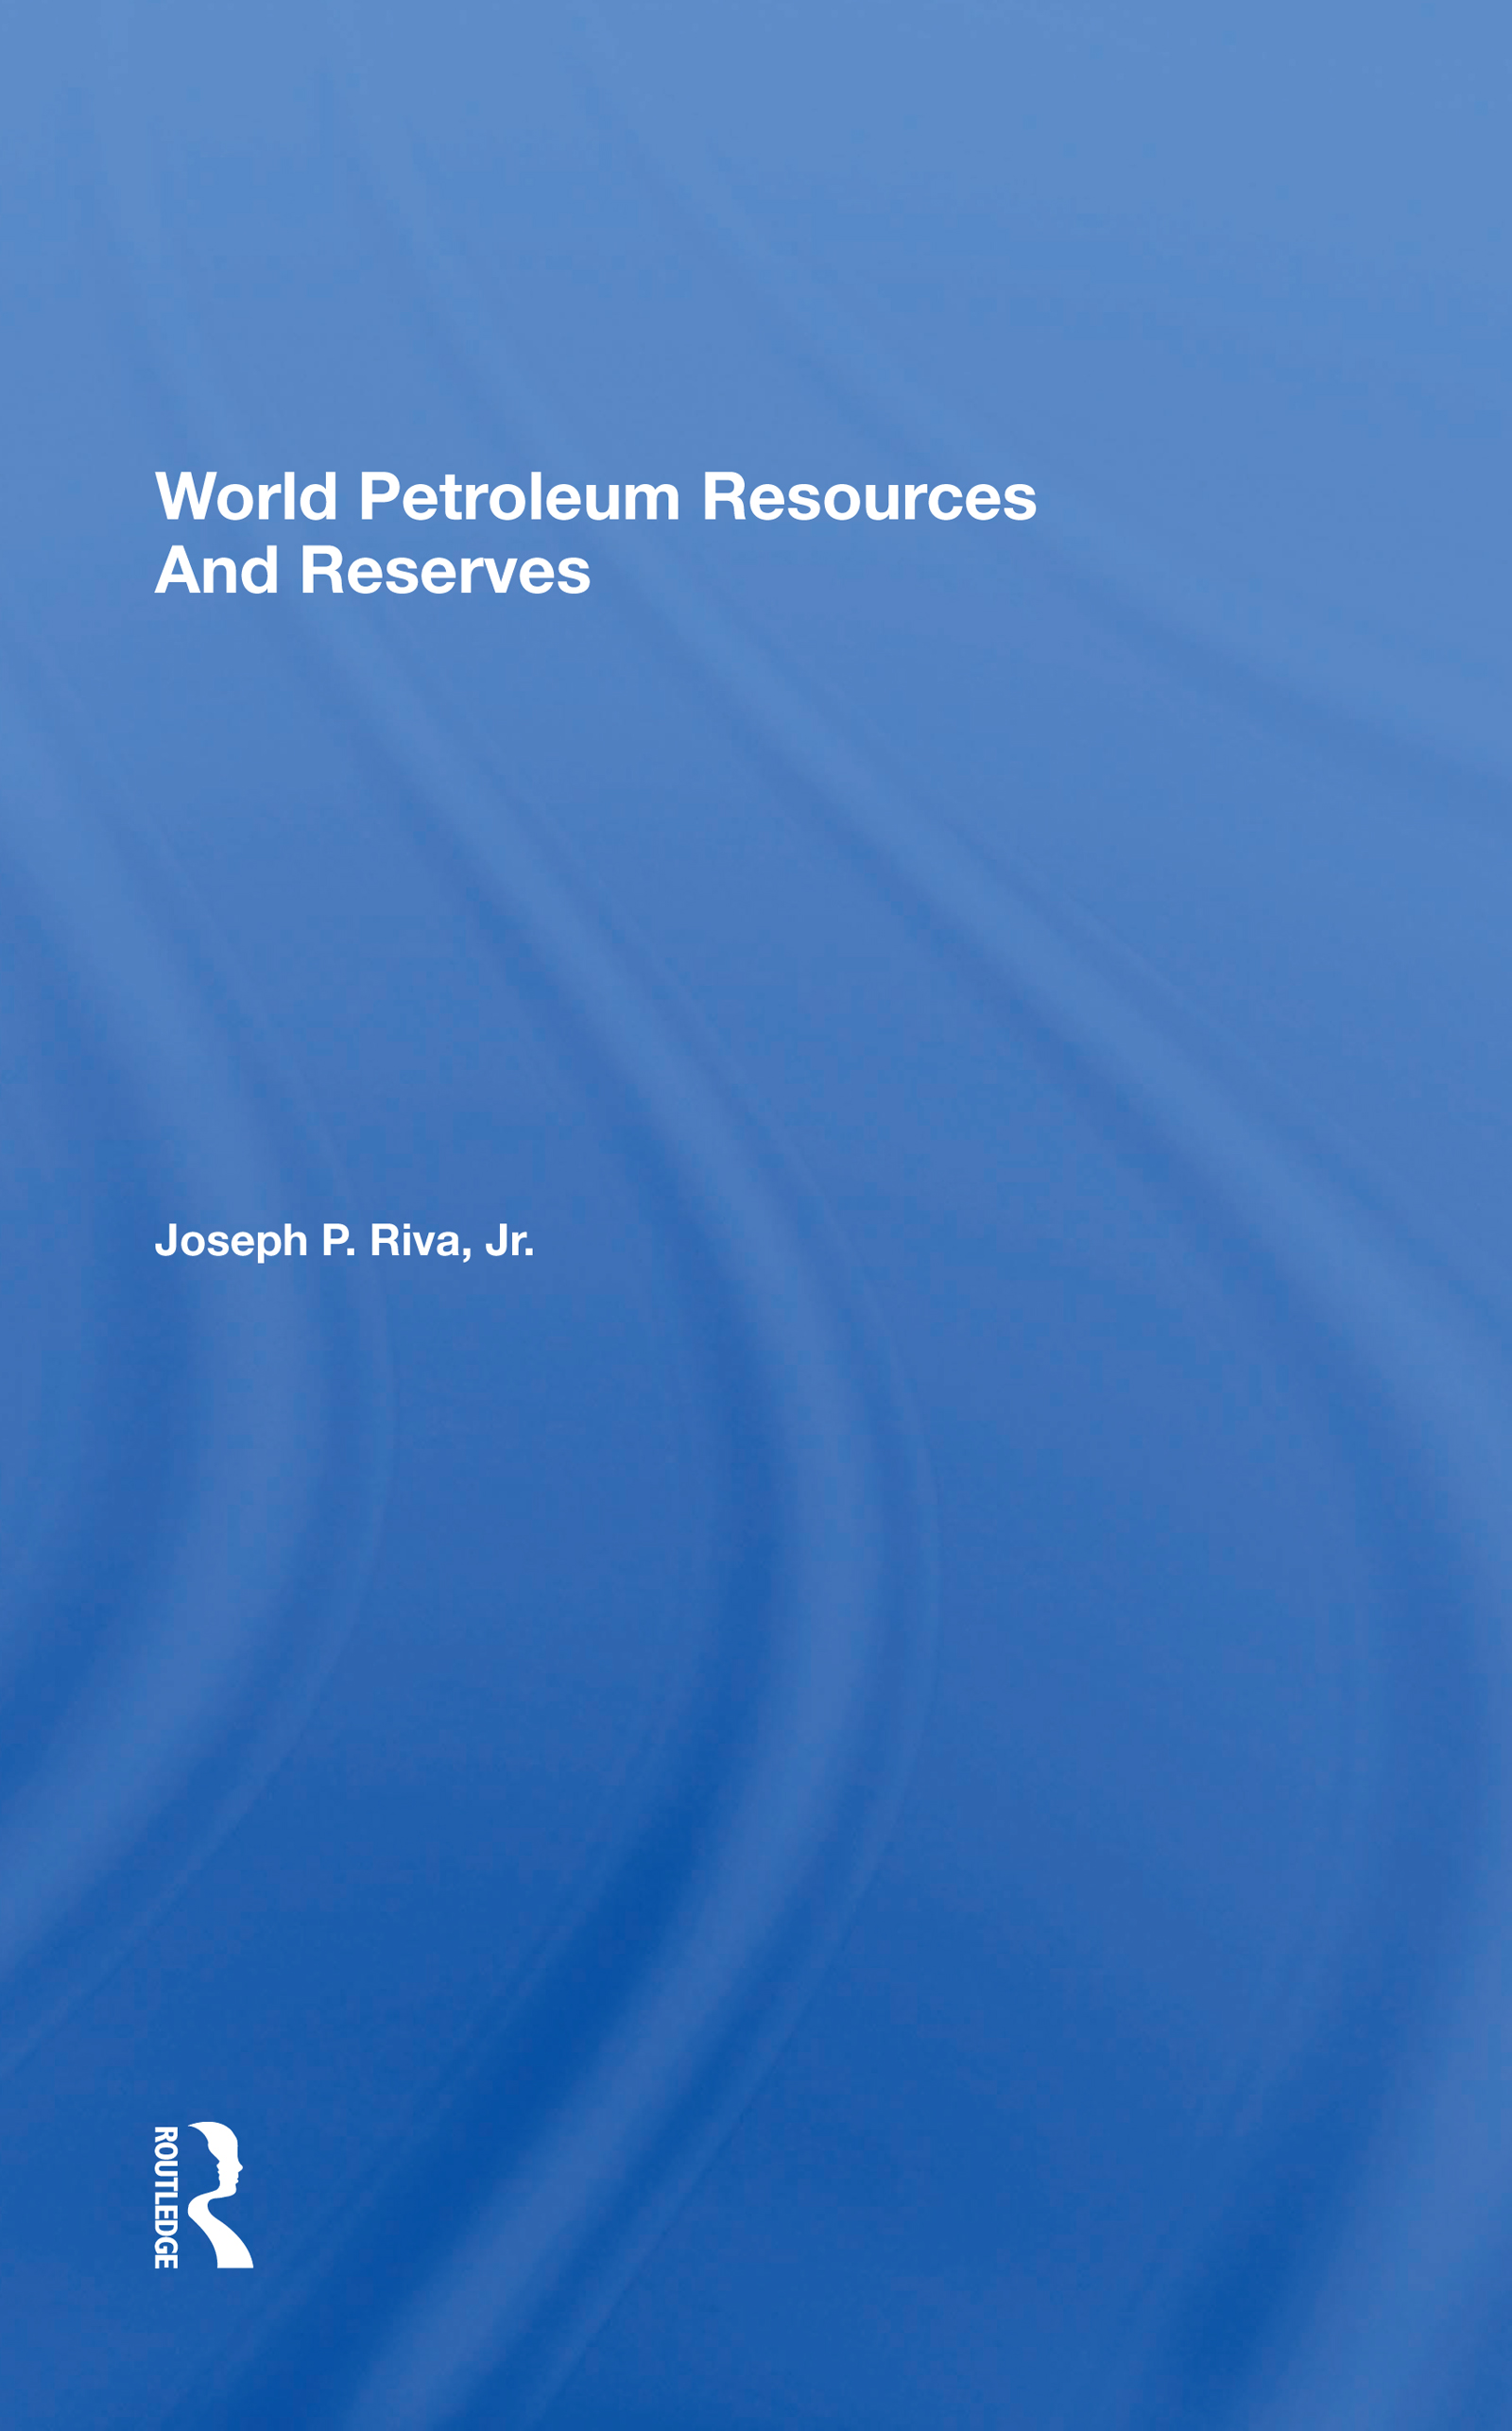 World Petroleum Resources and Reserves